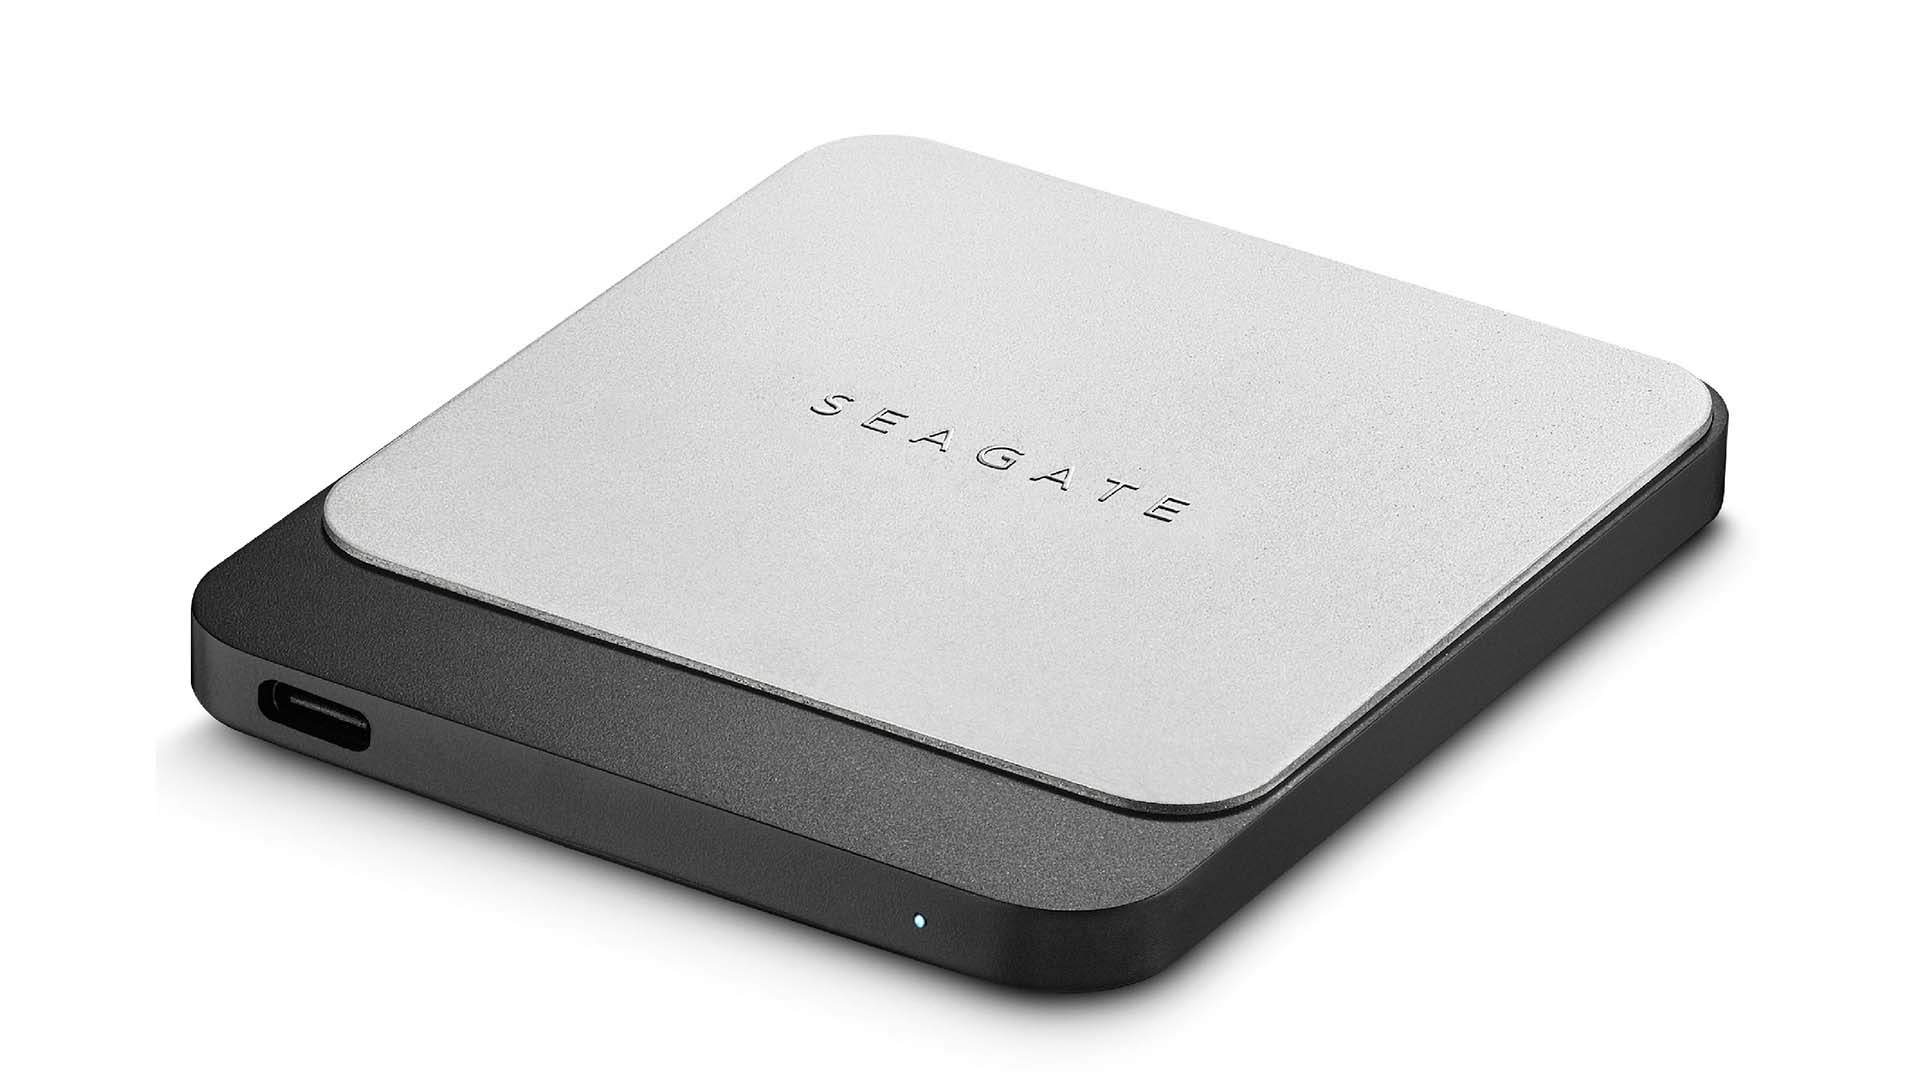 LaCie DJI Copilot、JoyDrive、LaCie Rugged Secure 與 Seagate Fast SSD 在 CES 2018